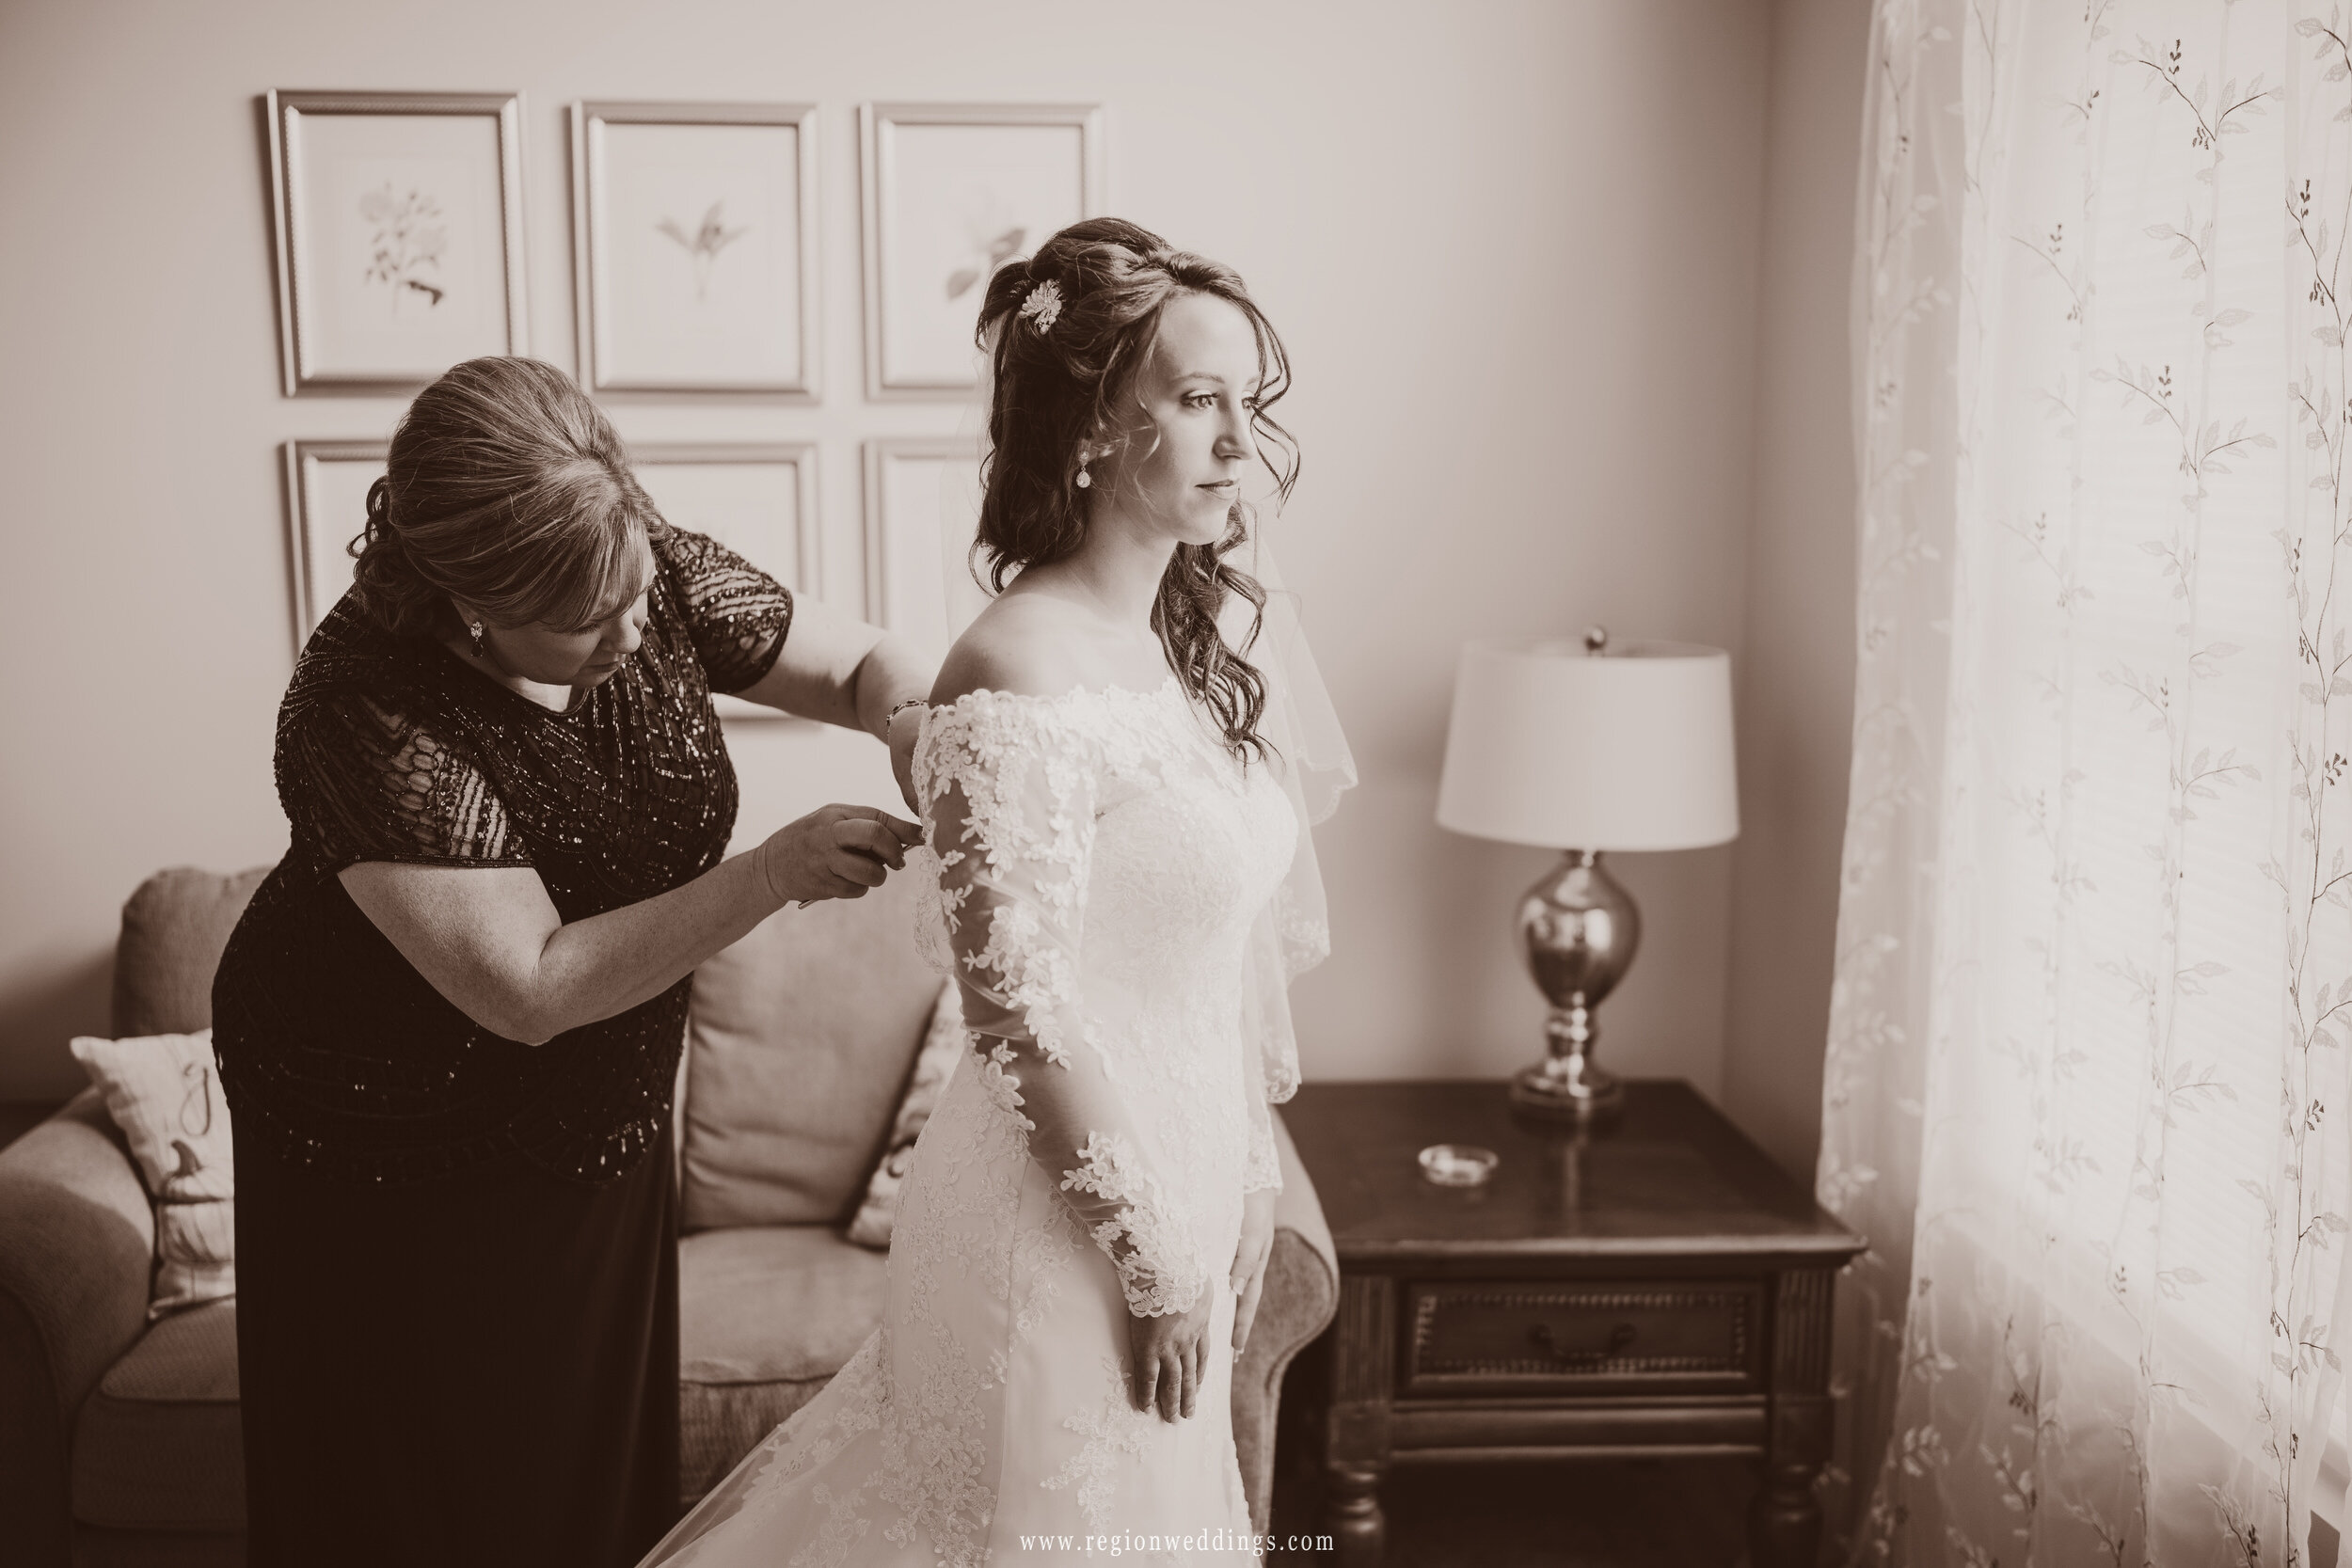 Mom helps her daughter into her dress on wedding day.